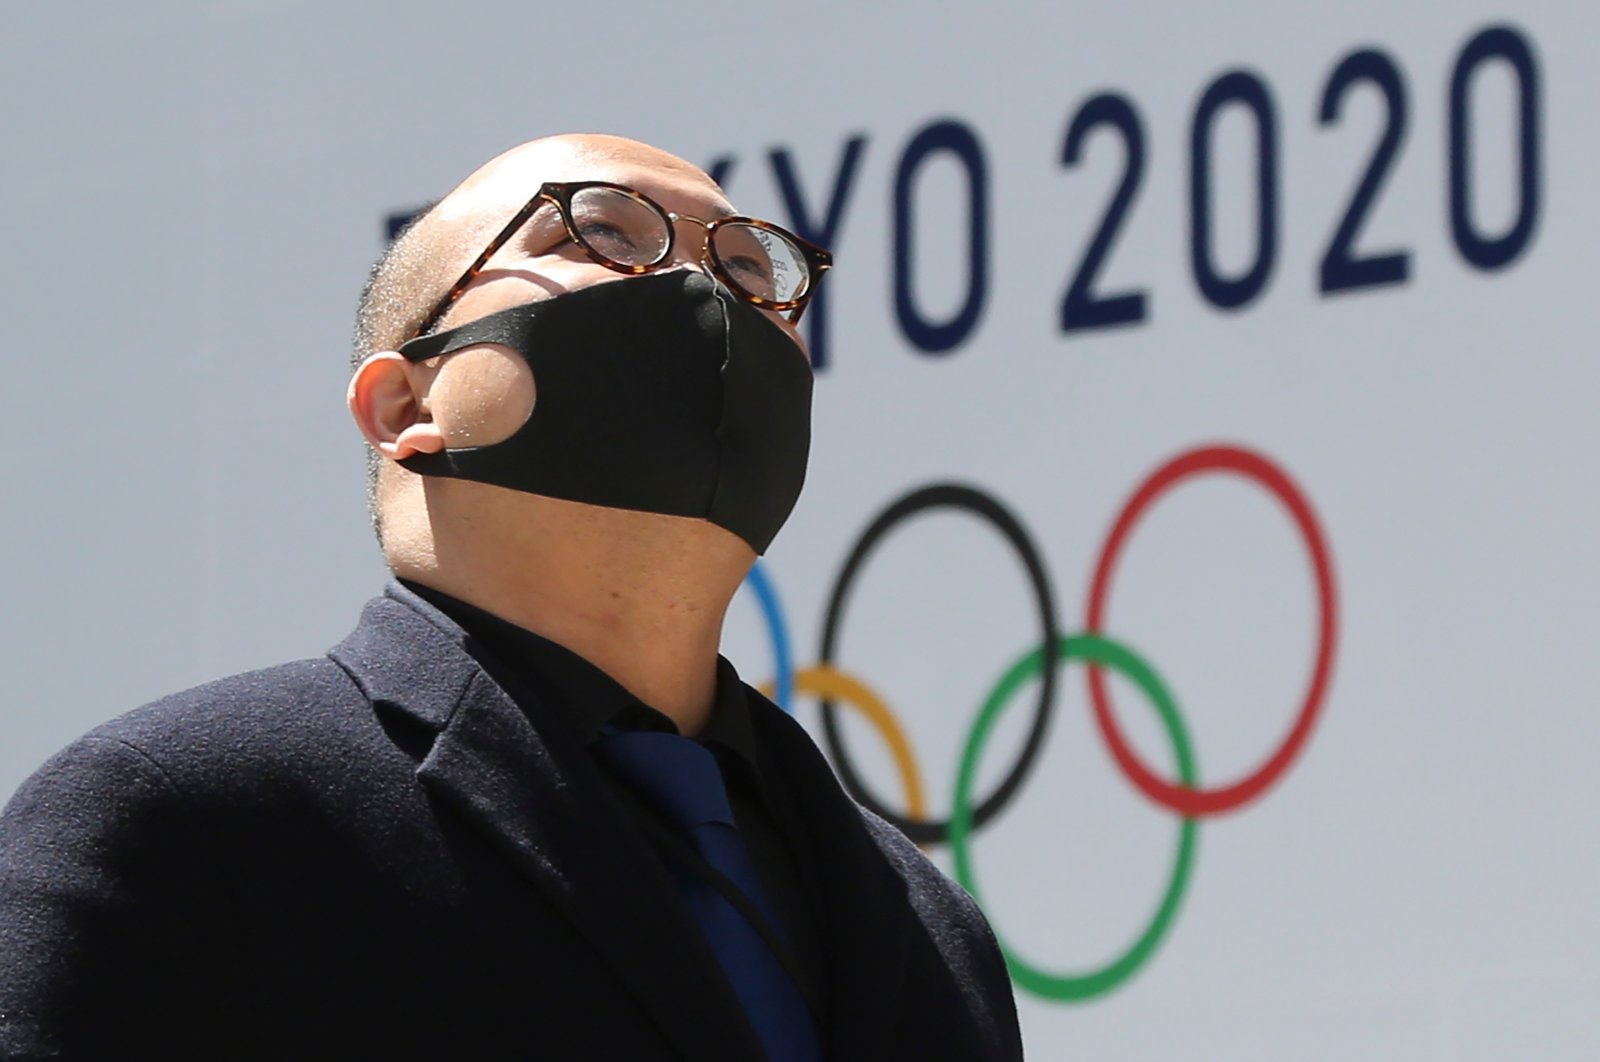 A man walks in front of a Tokyo Olympics logo in Tokyo, Japan, March 25, 2020. (AP Photo)